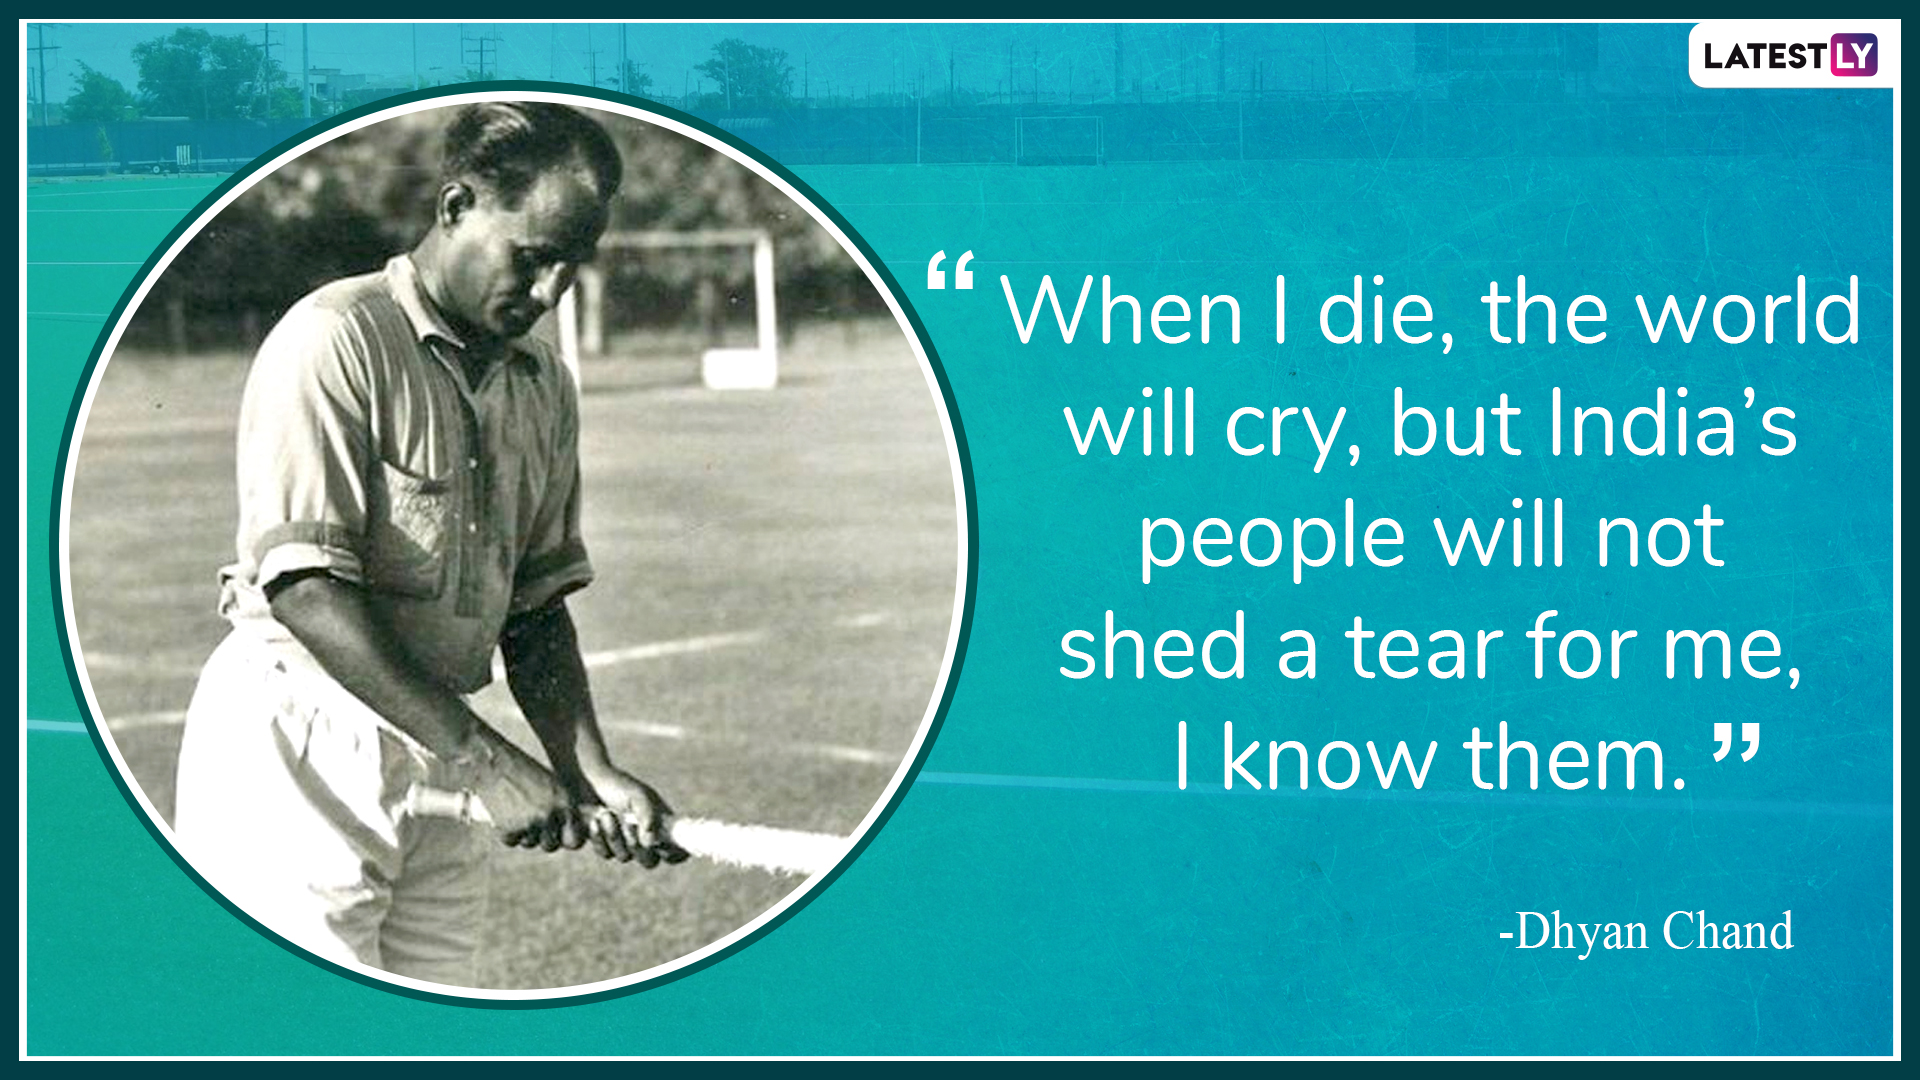 National Sports Day 2019 Here Are Interesting Quotes Of Some Incredible Indian Sportspersons Latestly